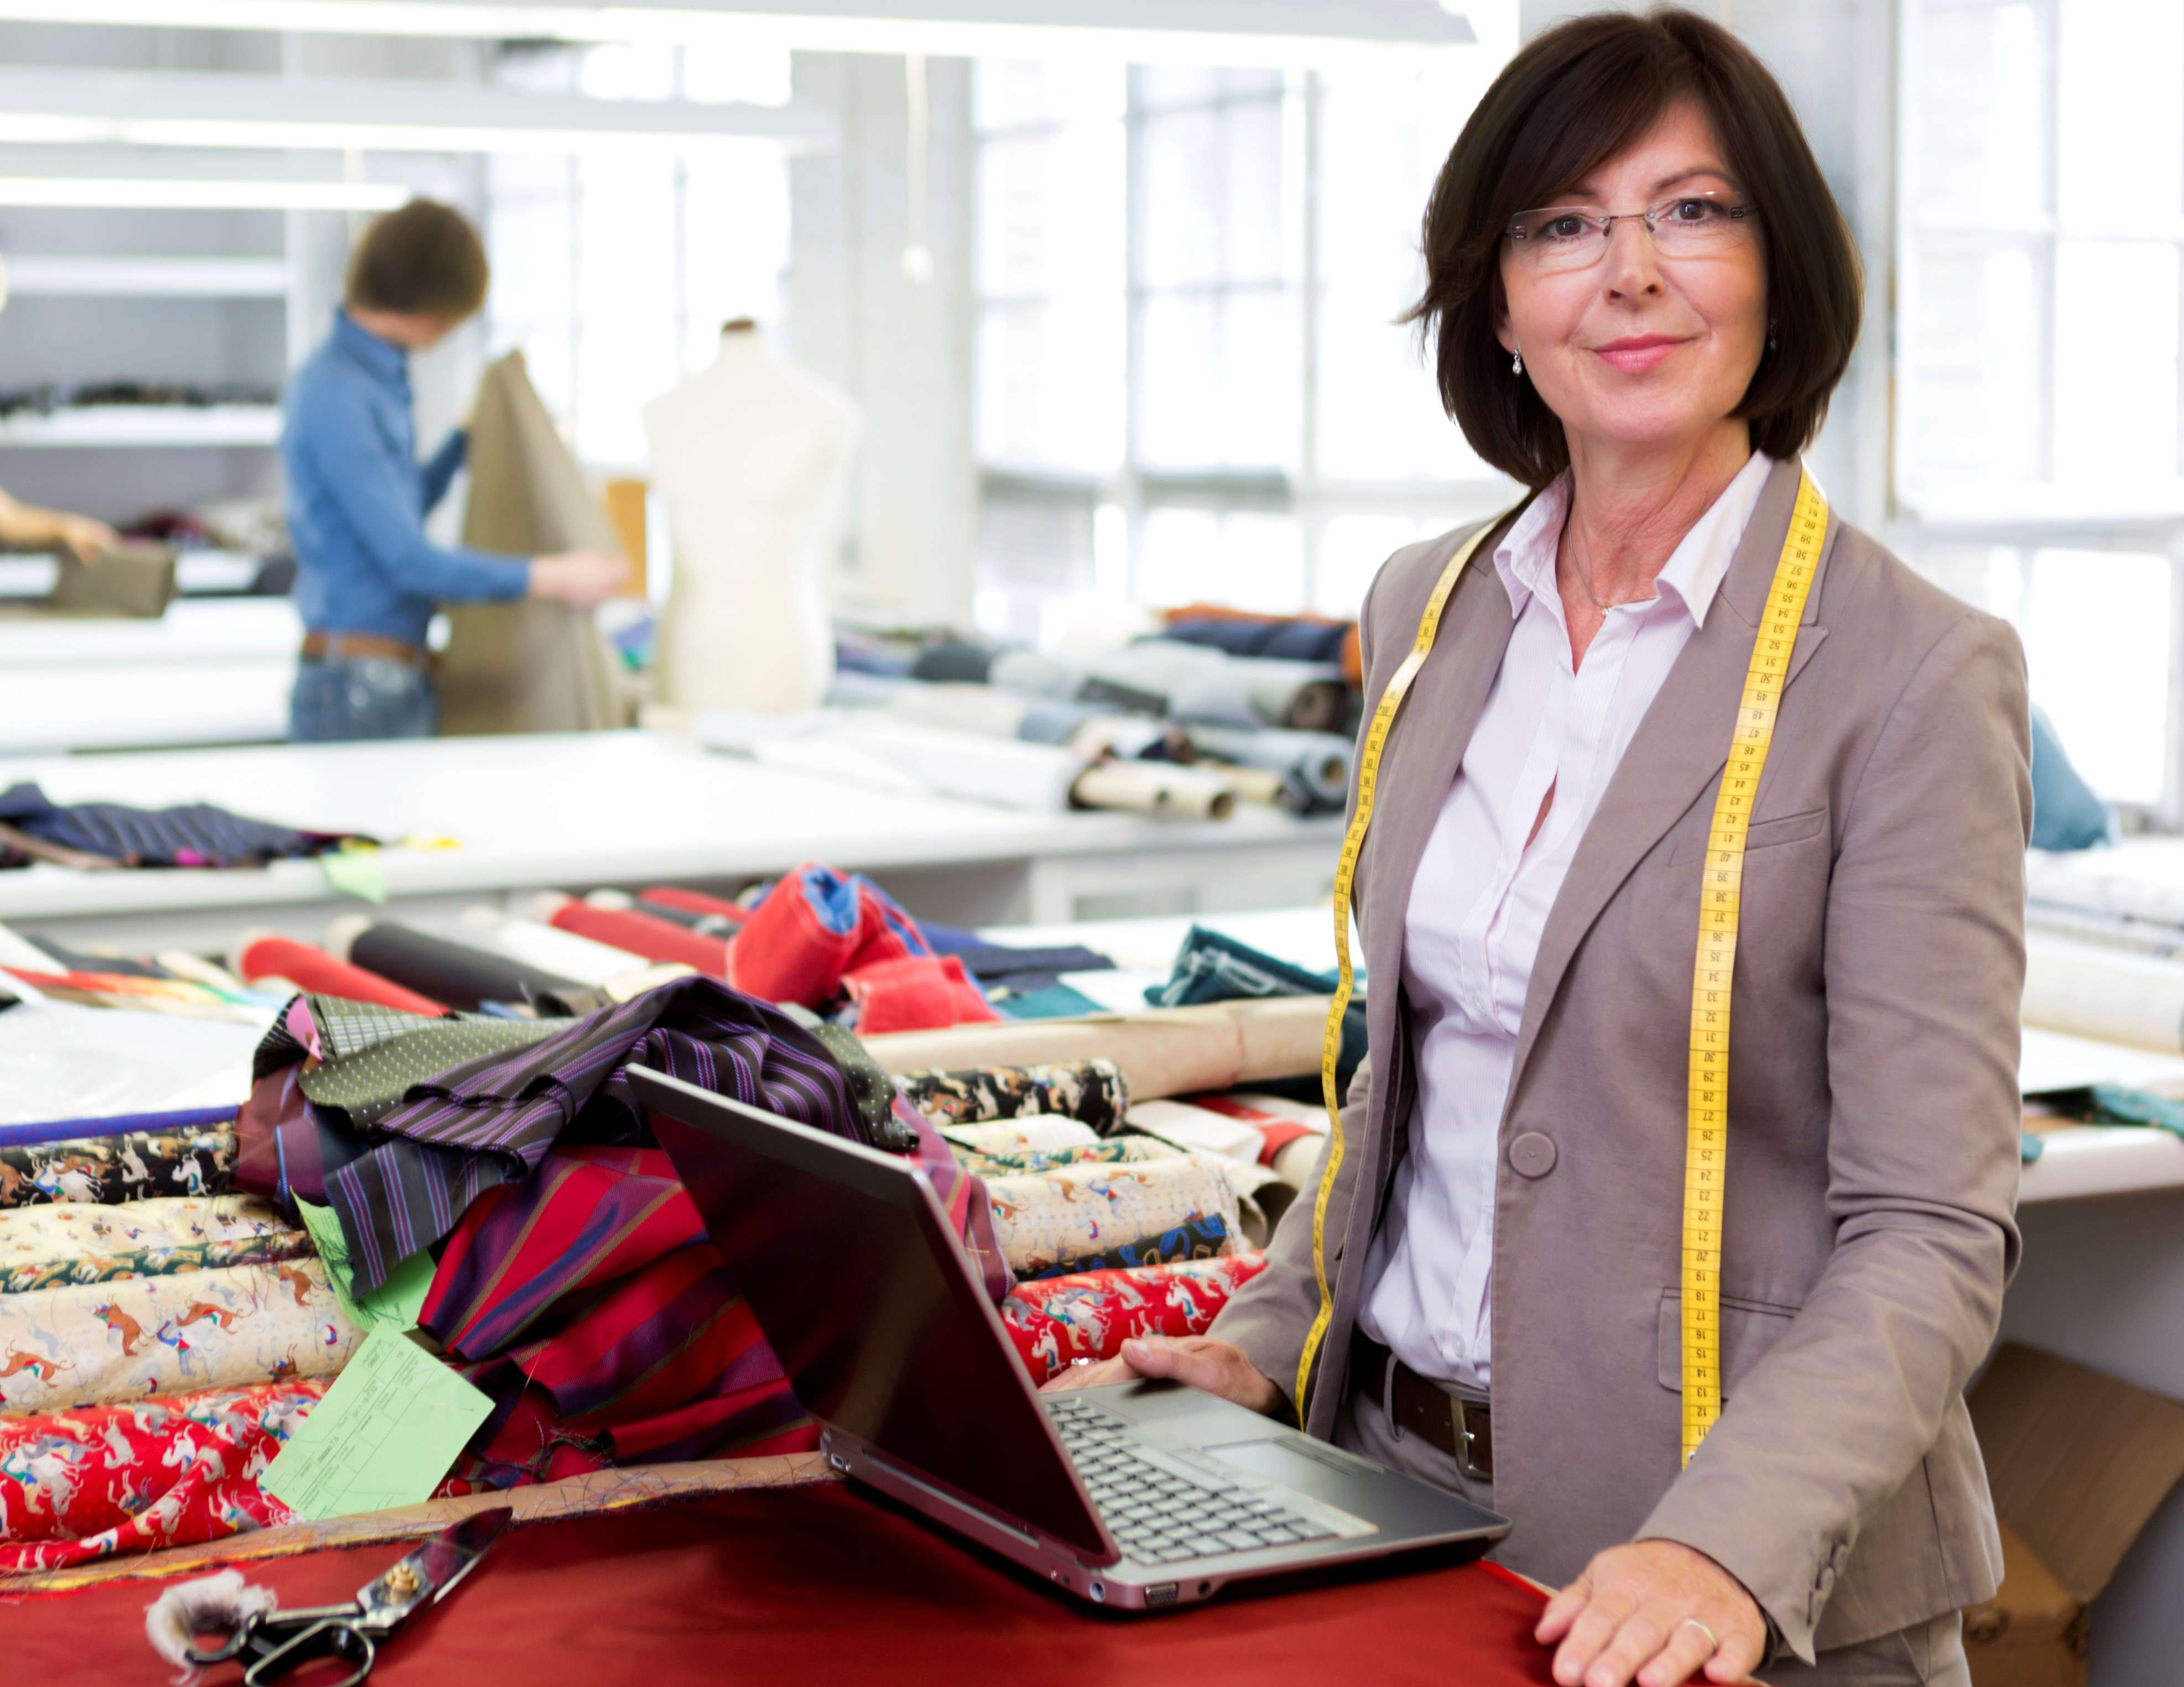 Textile sector is looking for qualified professionals